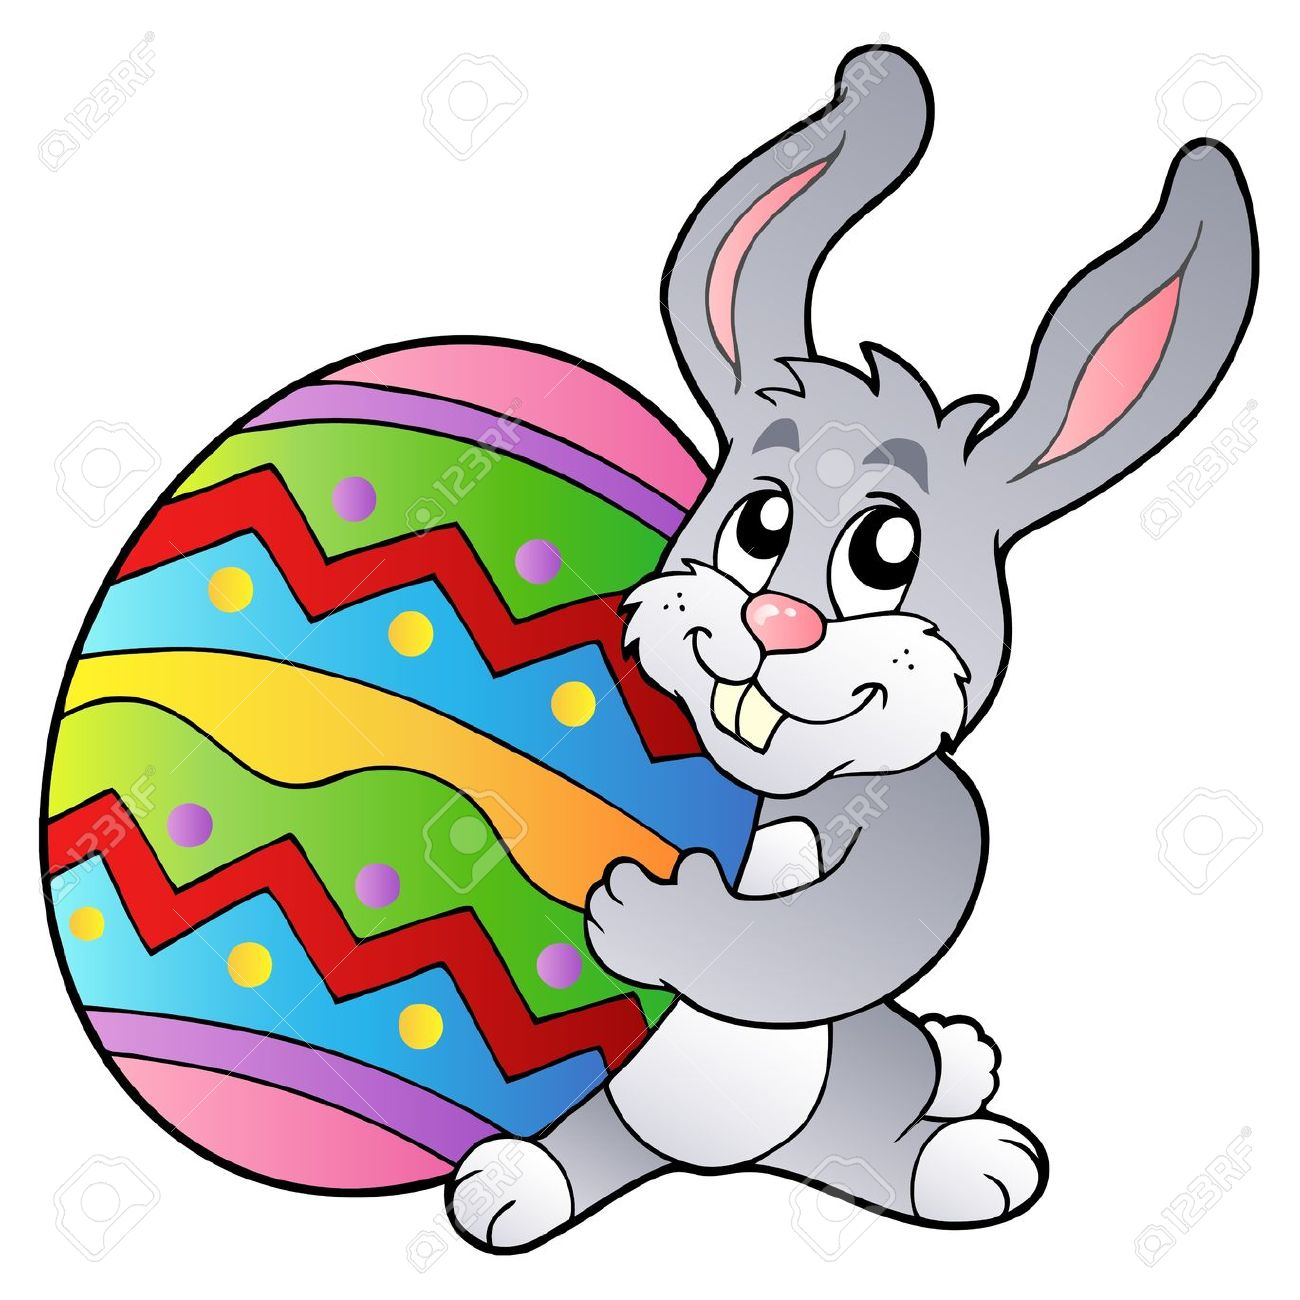 Ostern clipart png black and white stock Ostern clipart 7 » Clipart Station png black and white stock